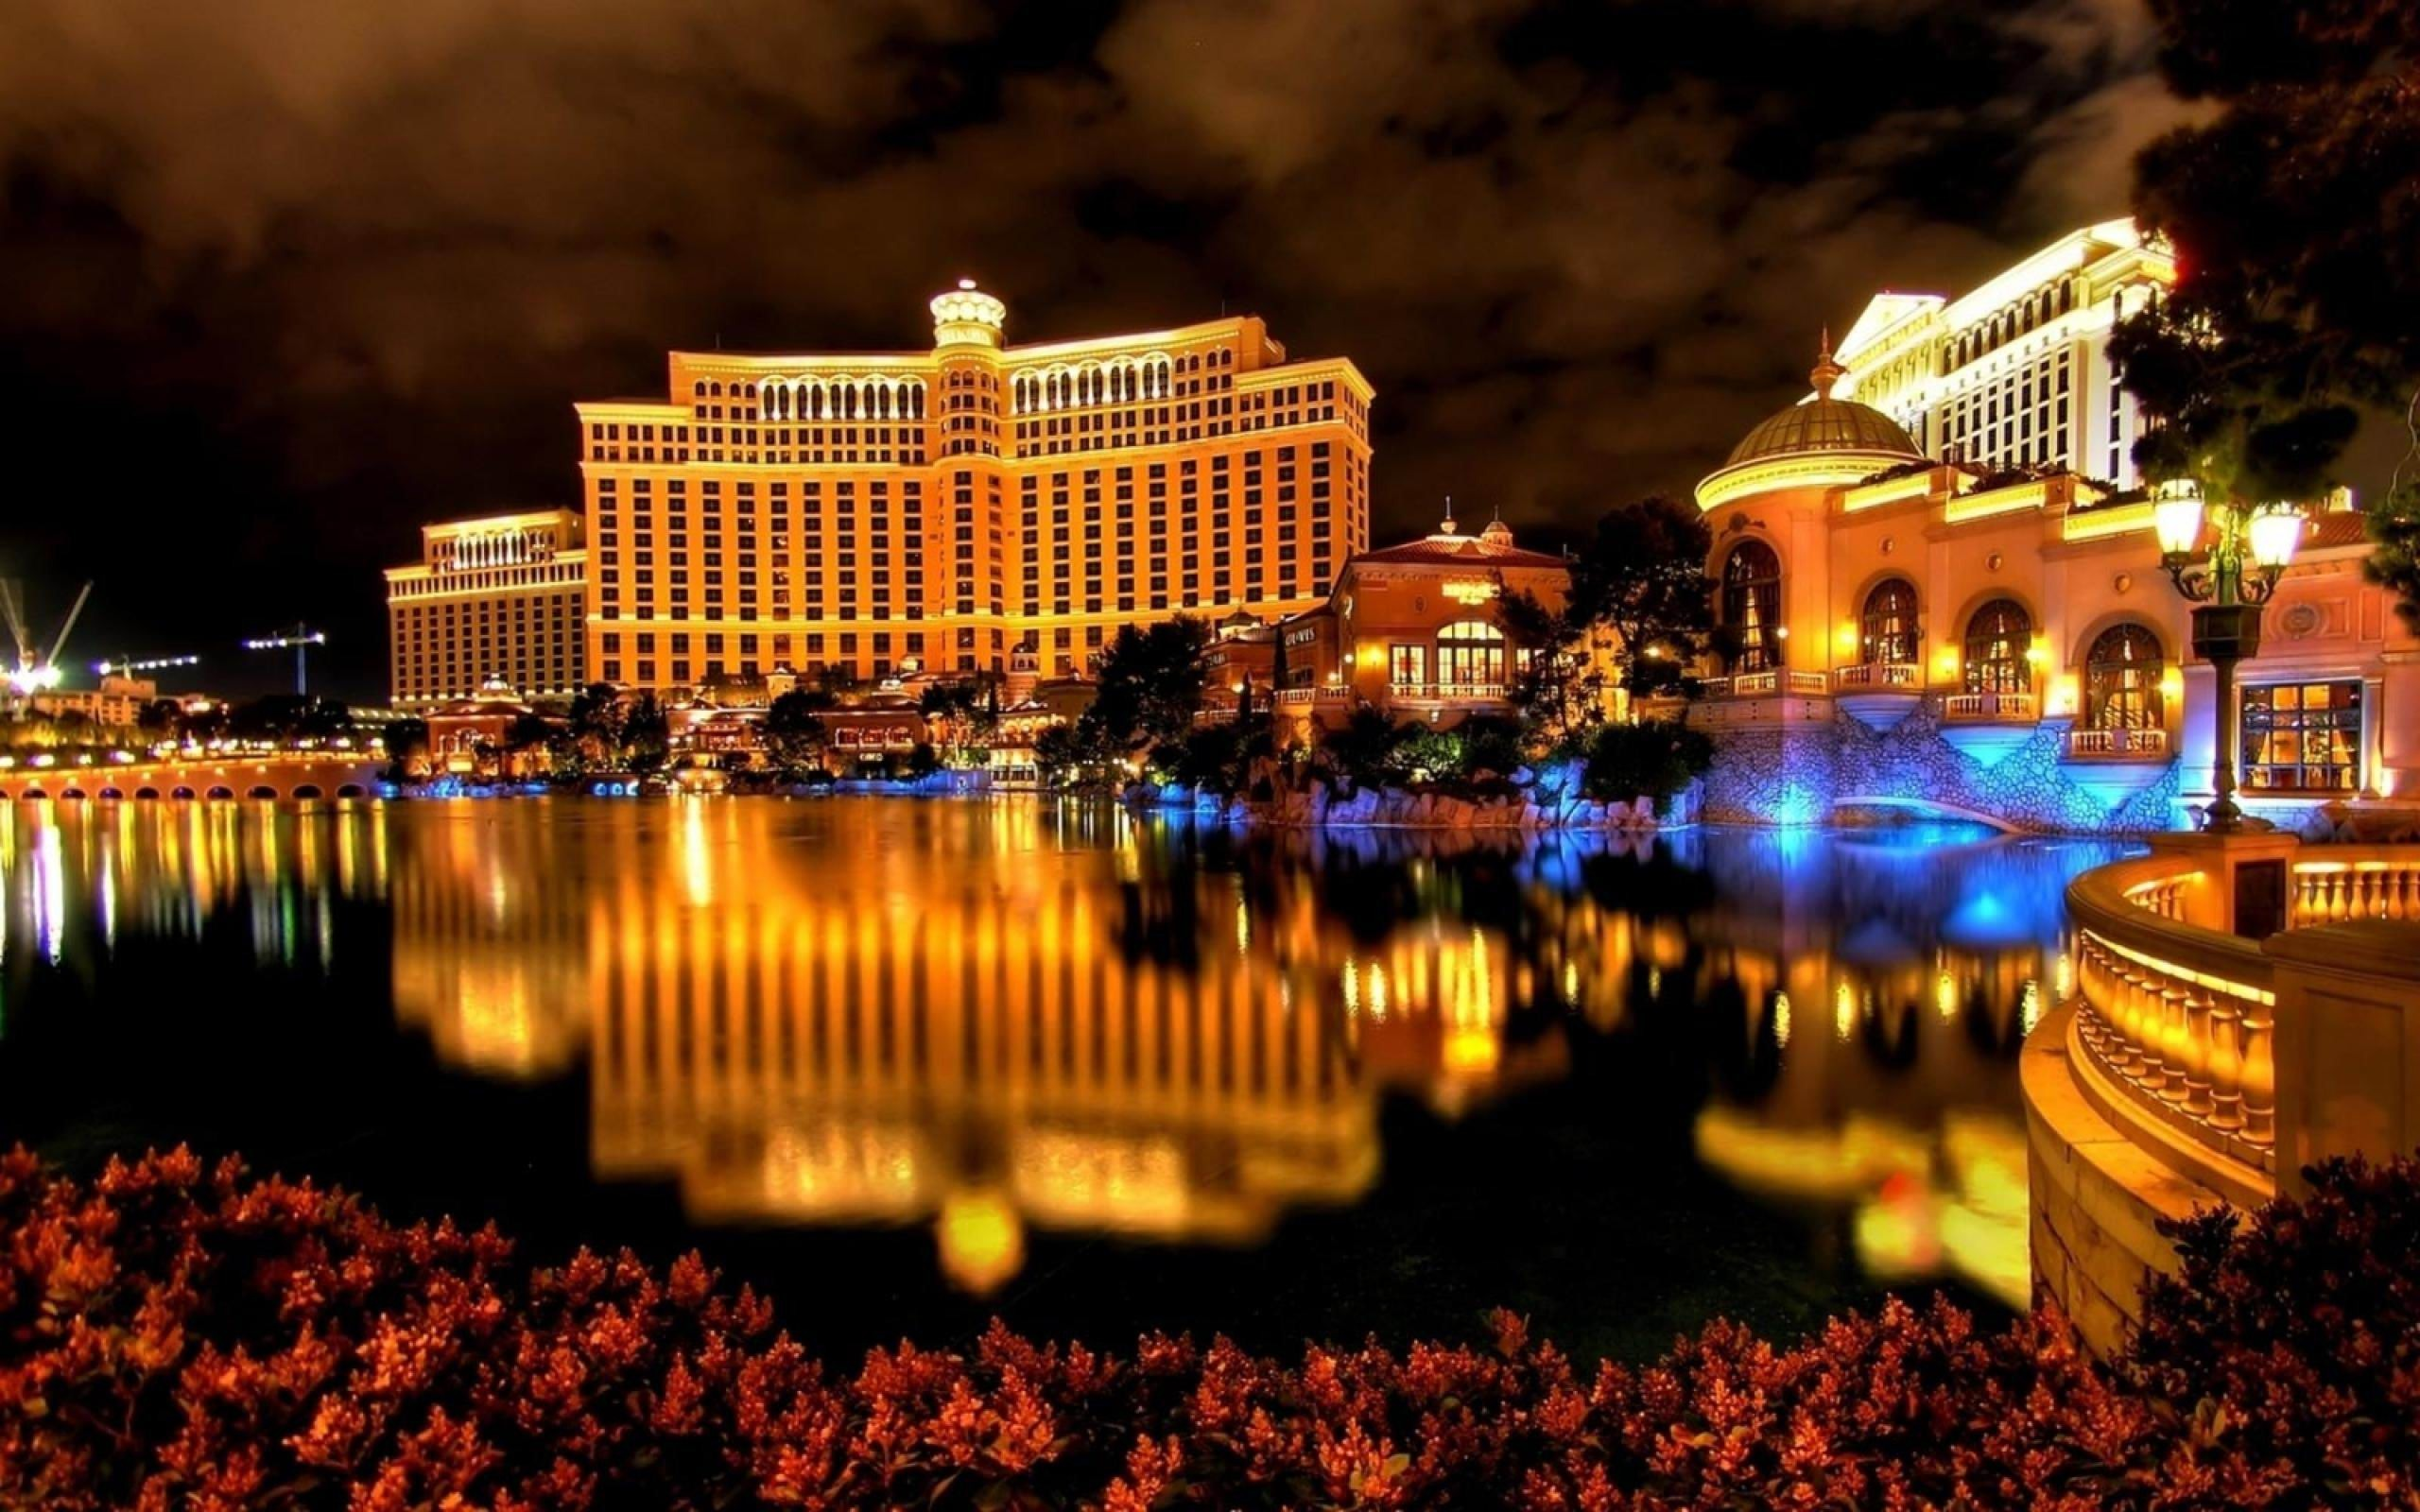 Las Vegas Get The Amazing Strip Experience Reward Points Rewardpoints United States